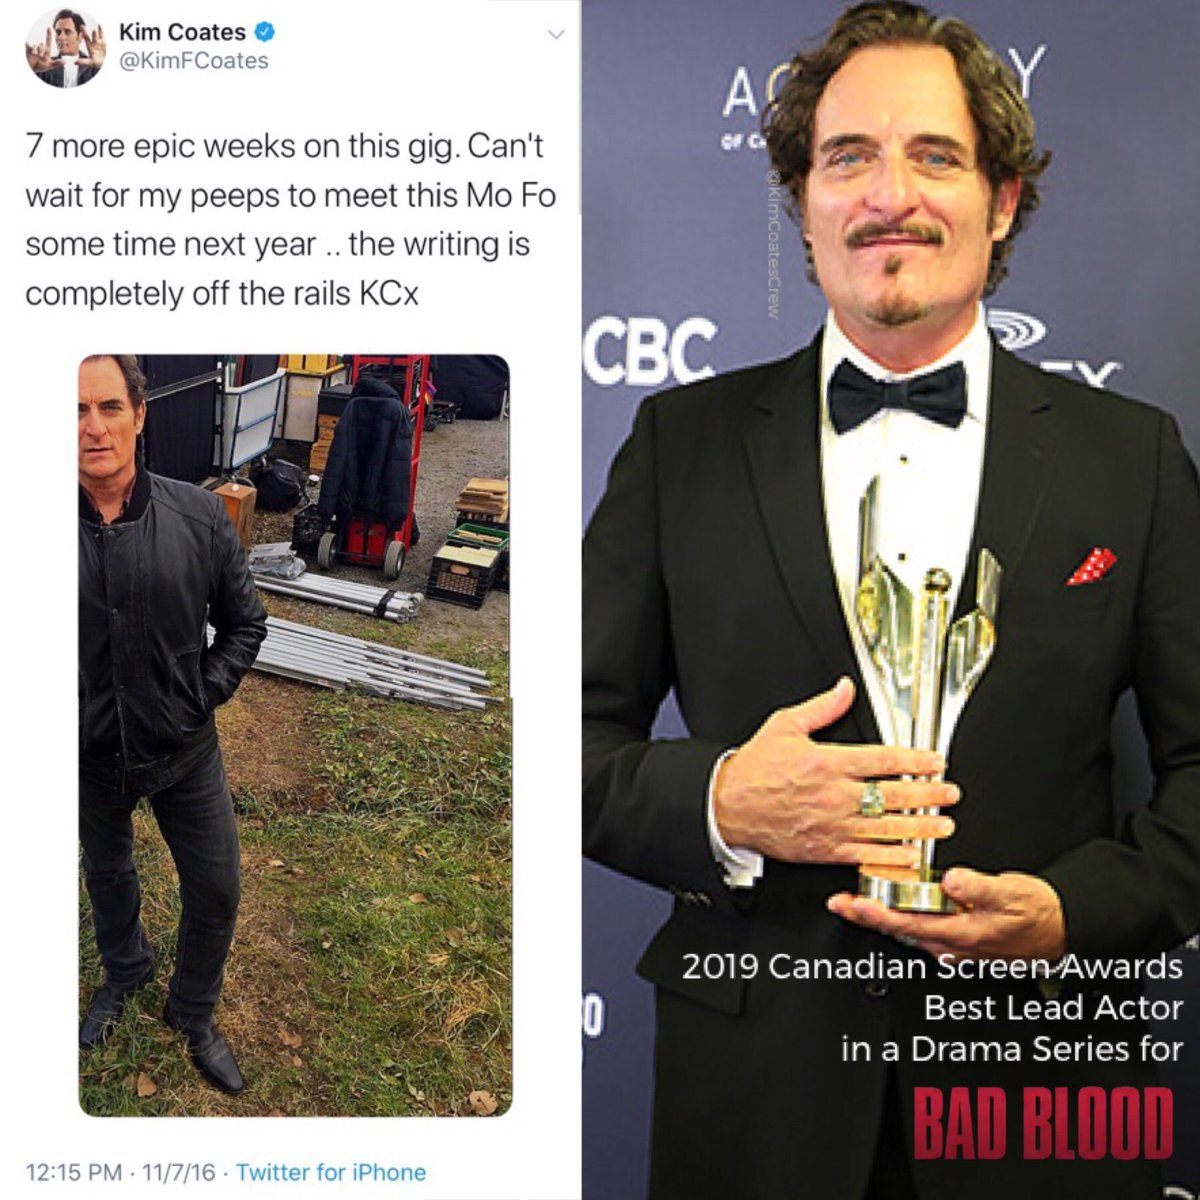 3 years ago today...@KimFCoates gave us the first ever peek at Declan Gardiner...  This #ThursdayThrowback is FULL of appreciation for EPIC  @BadBloodSeries Seasons 1 & 2 and Kim's BRILLIANT, 2019-Canadian-Screen-Award-for-Best-Lead-Actor-in-a-Drama-Series performance as Declan👏🏻